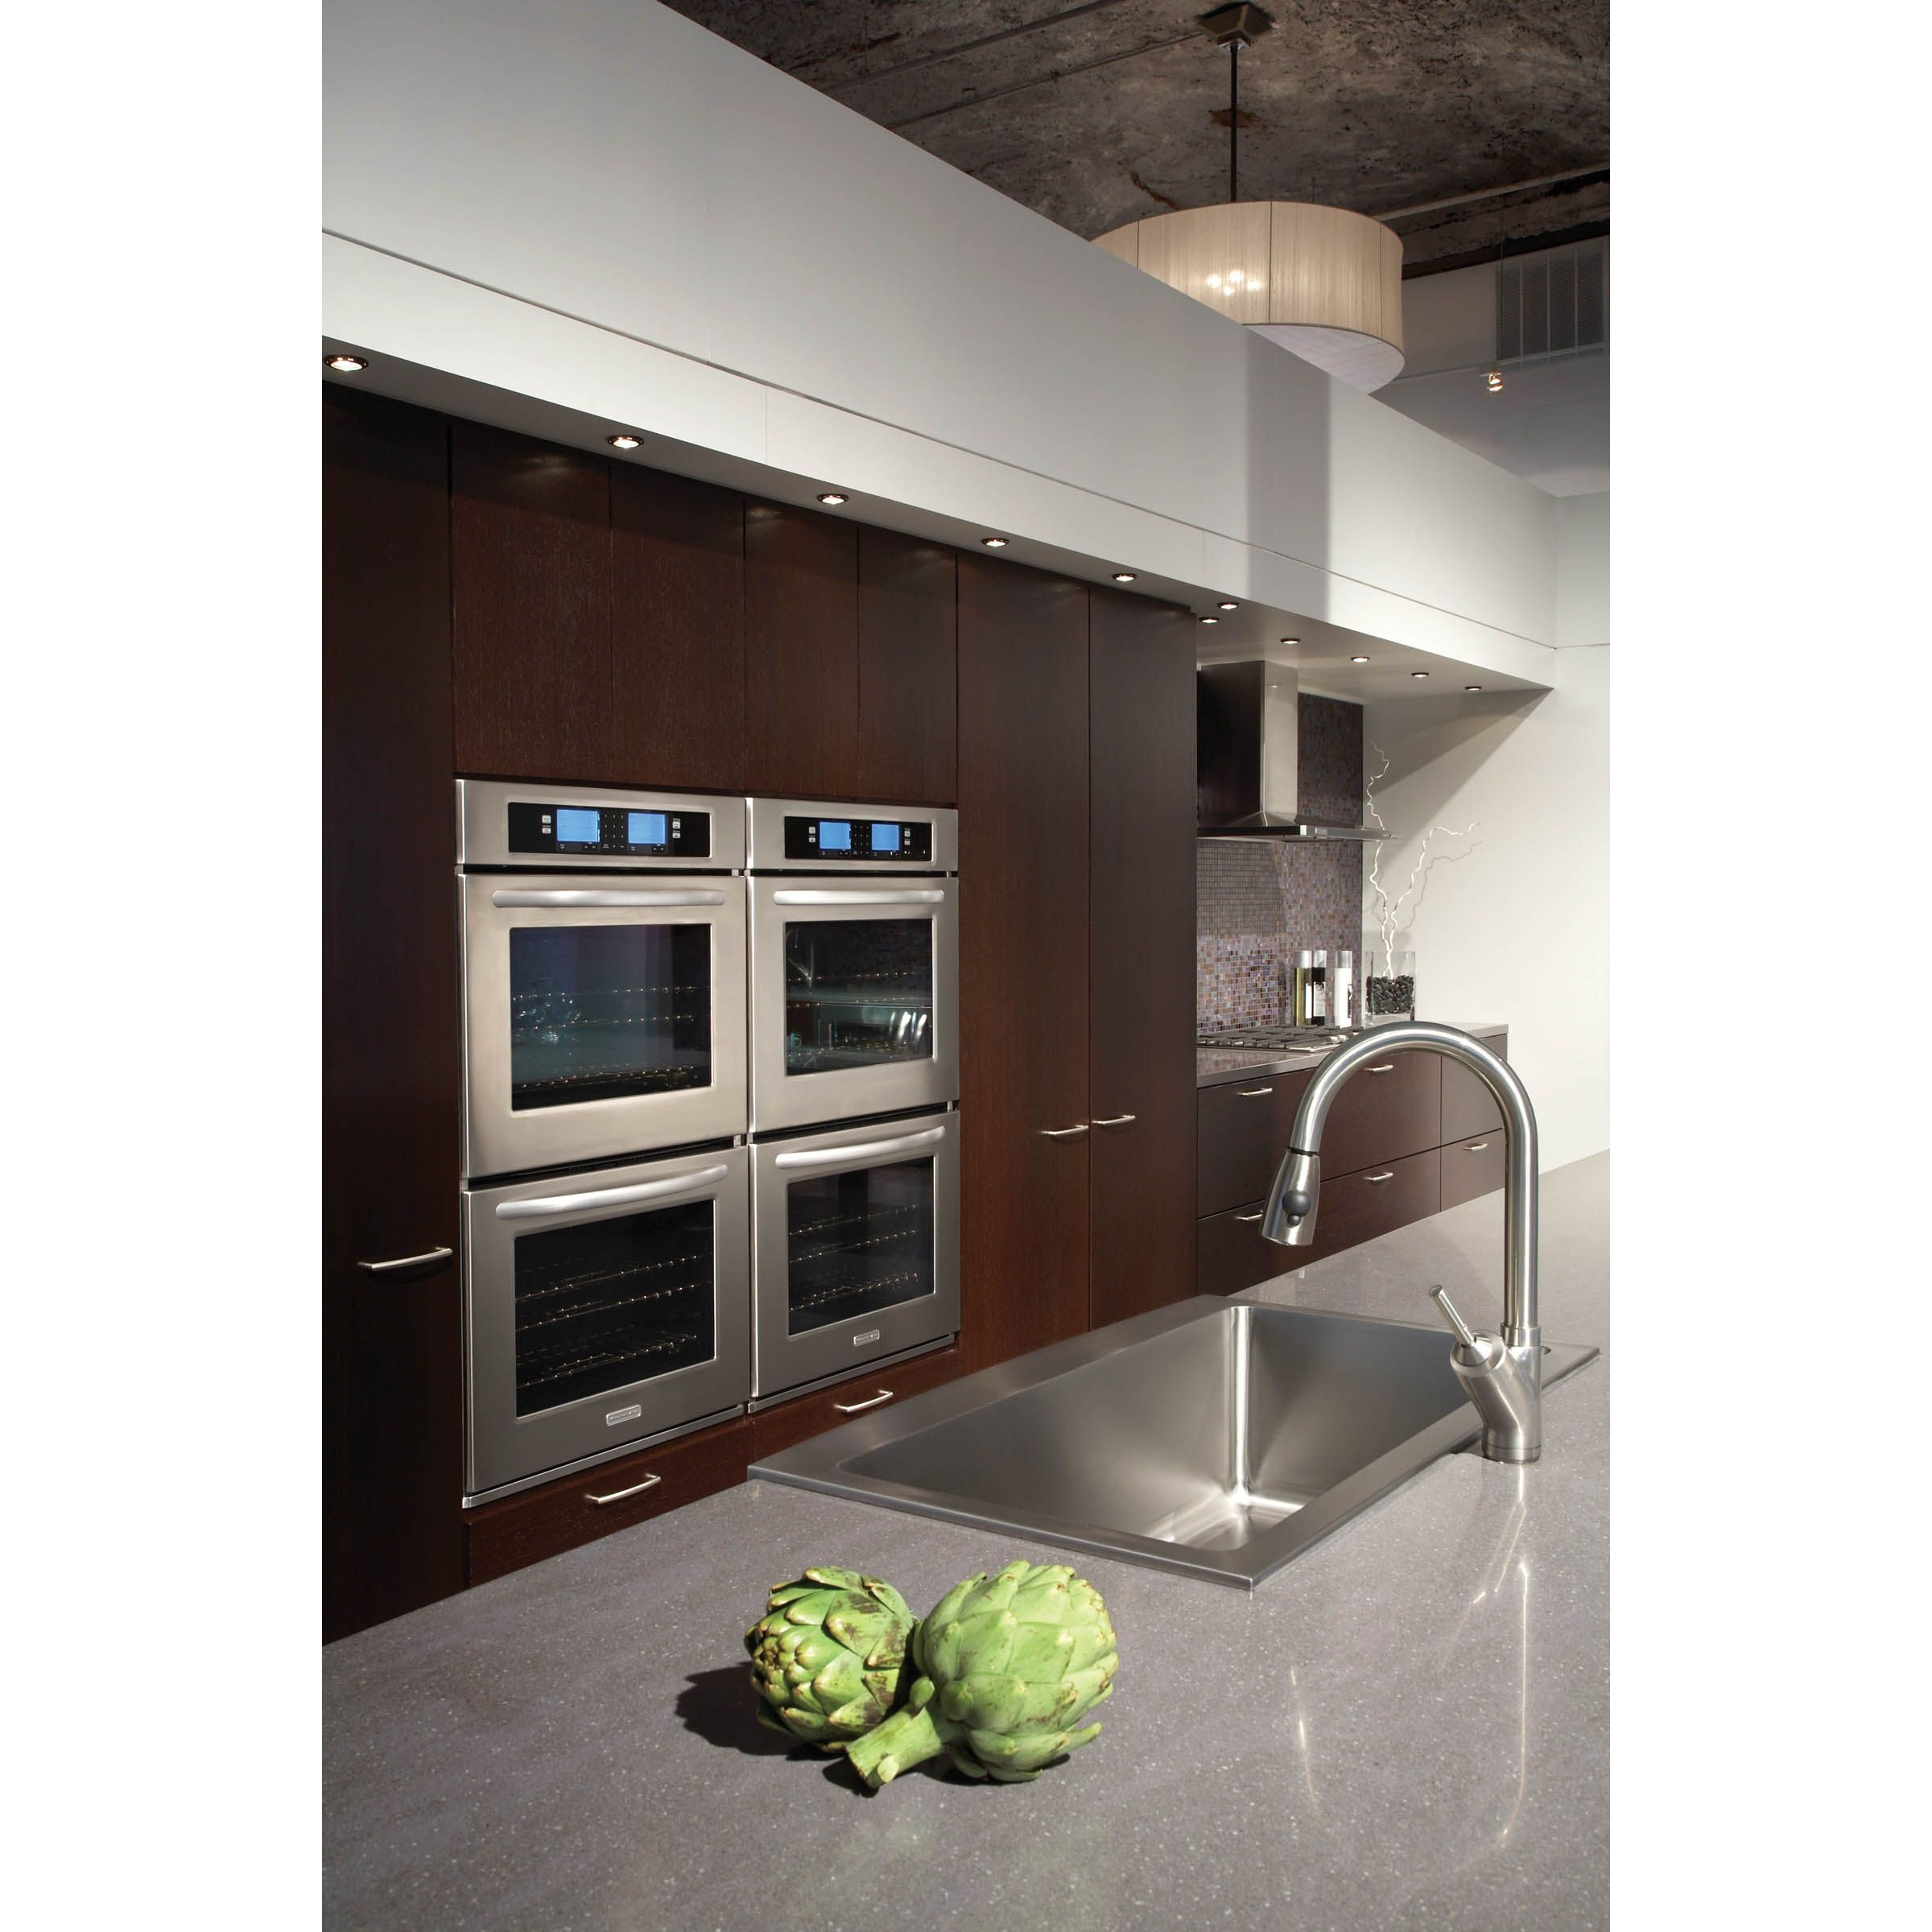 "KitchenAid 30"" Double Wall Oven w/ Steam-Assist Technology"